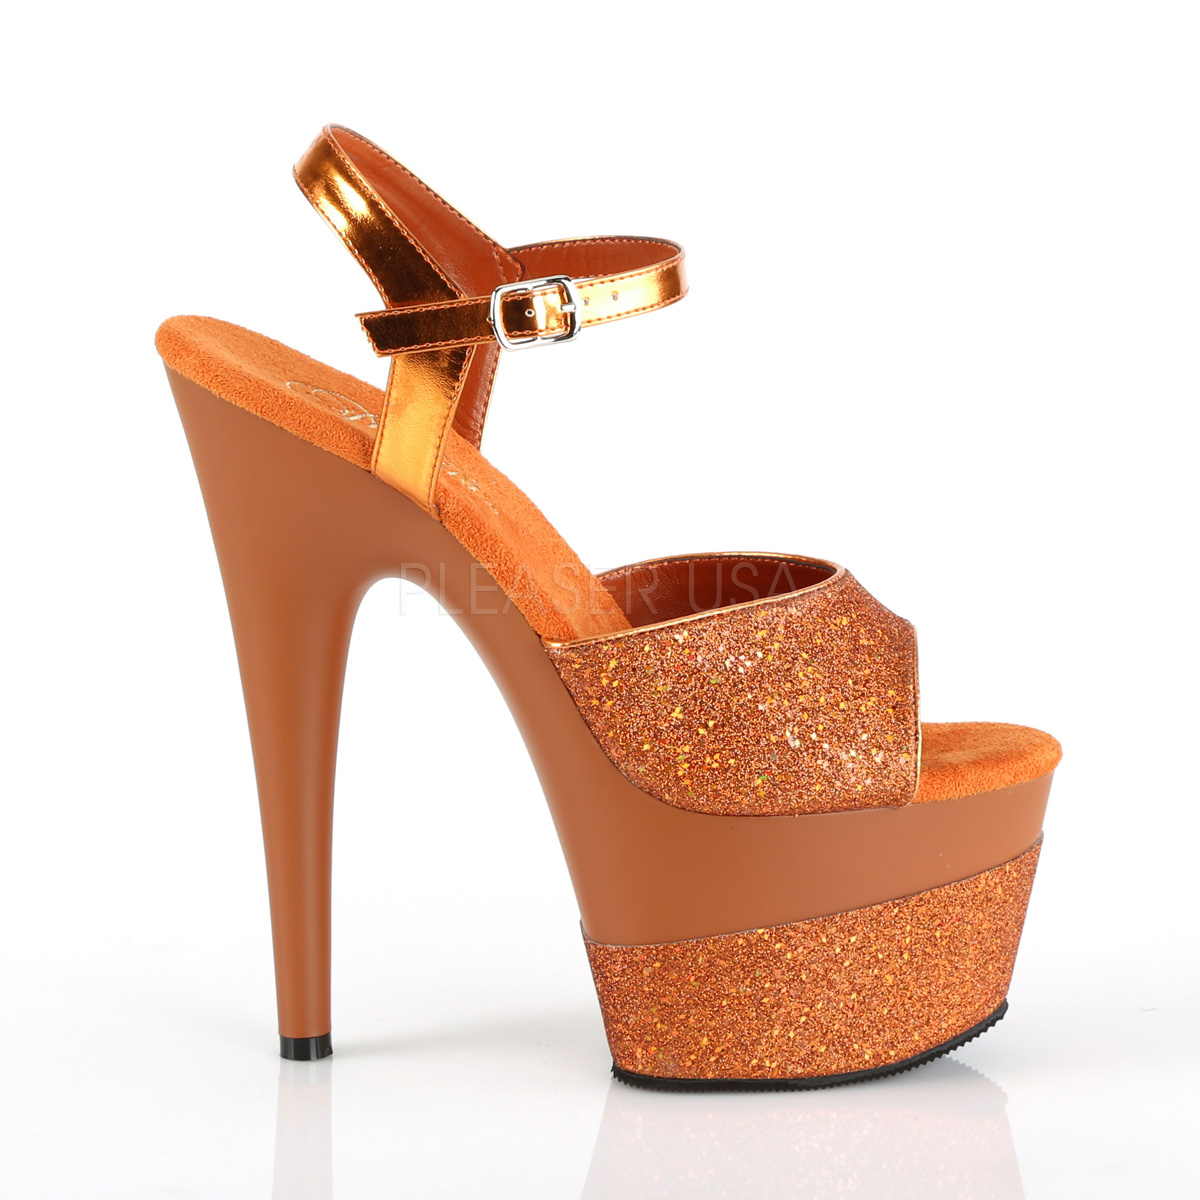 328588fbc3 Orange 18 cm ADORE-709-2G glitter platform sandals shoes